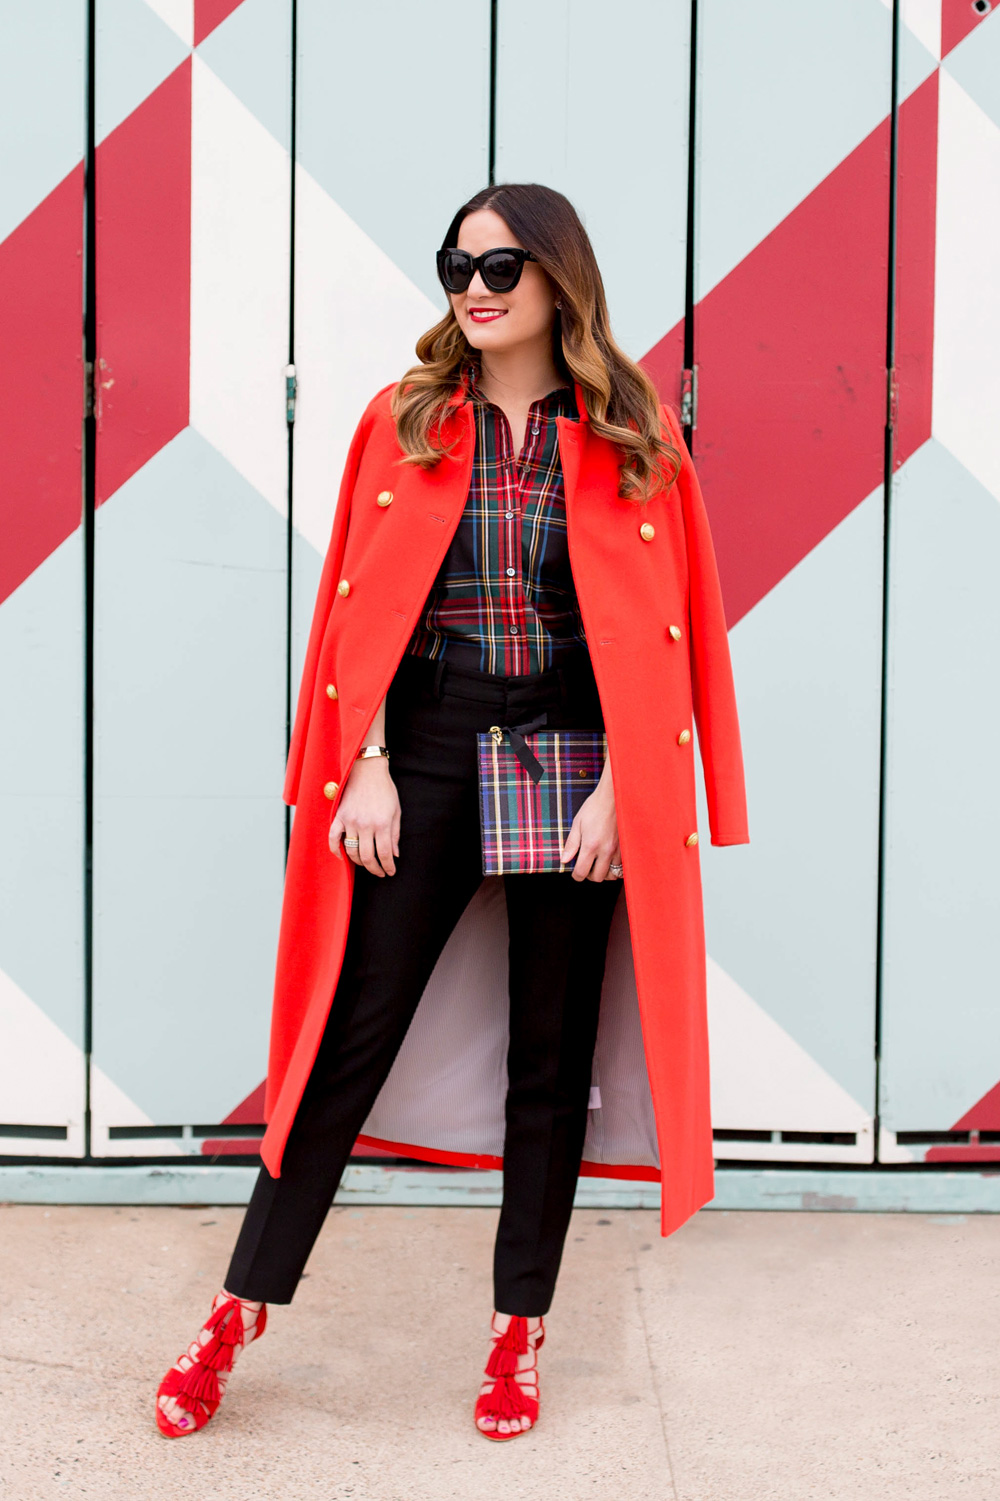 J. Crew Red Double Breasted Coat